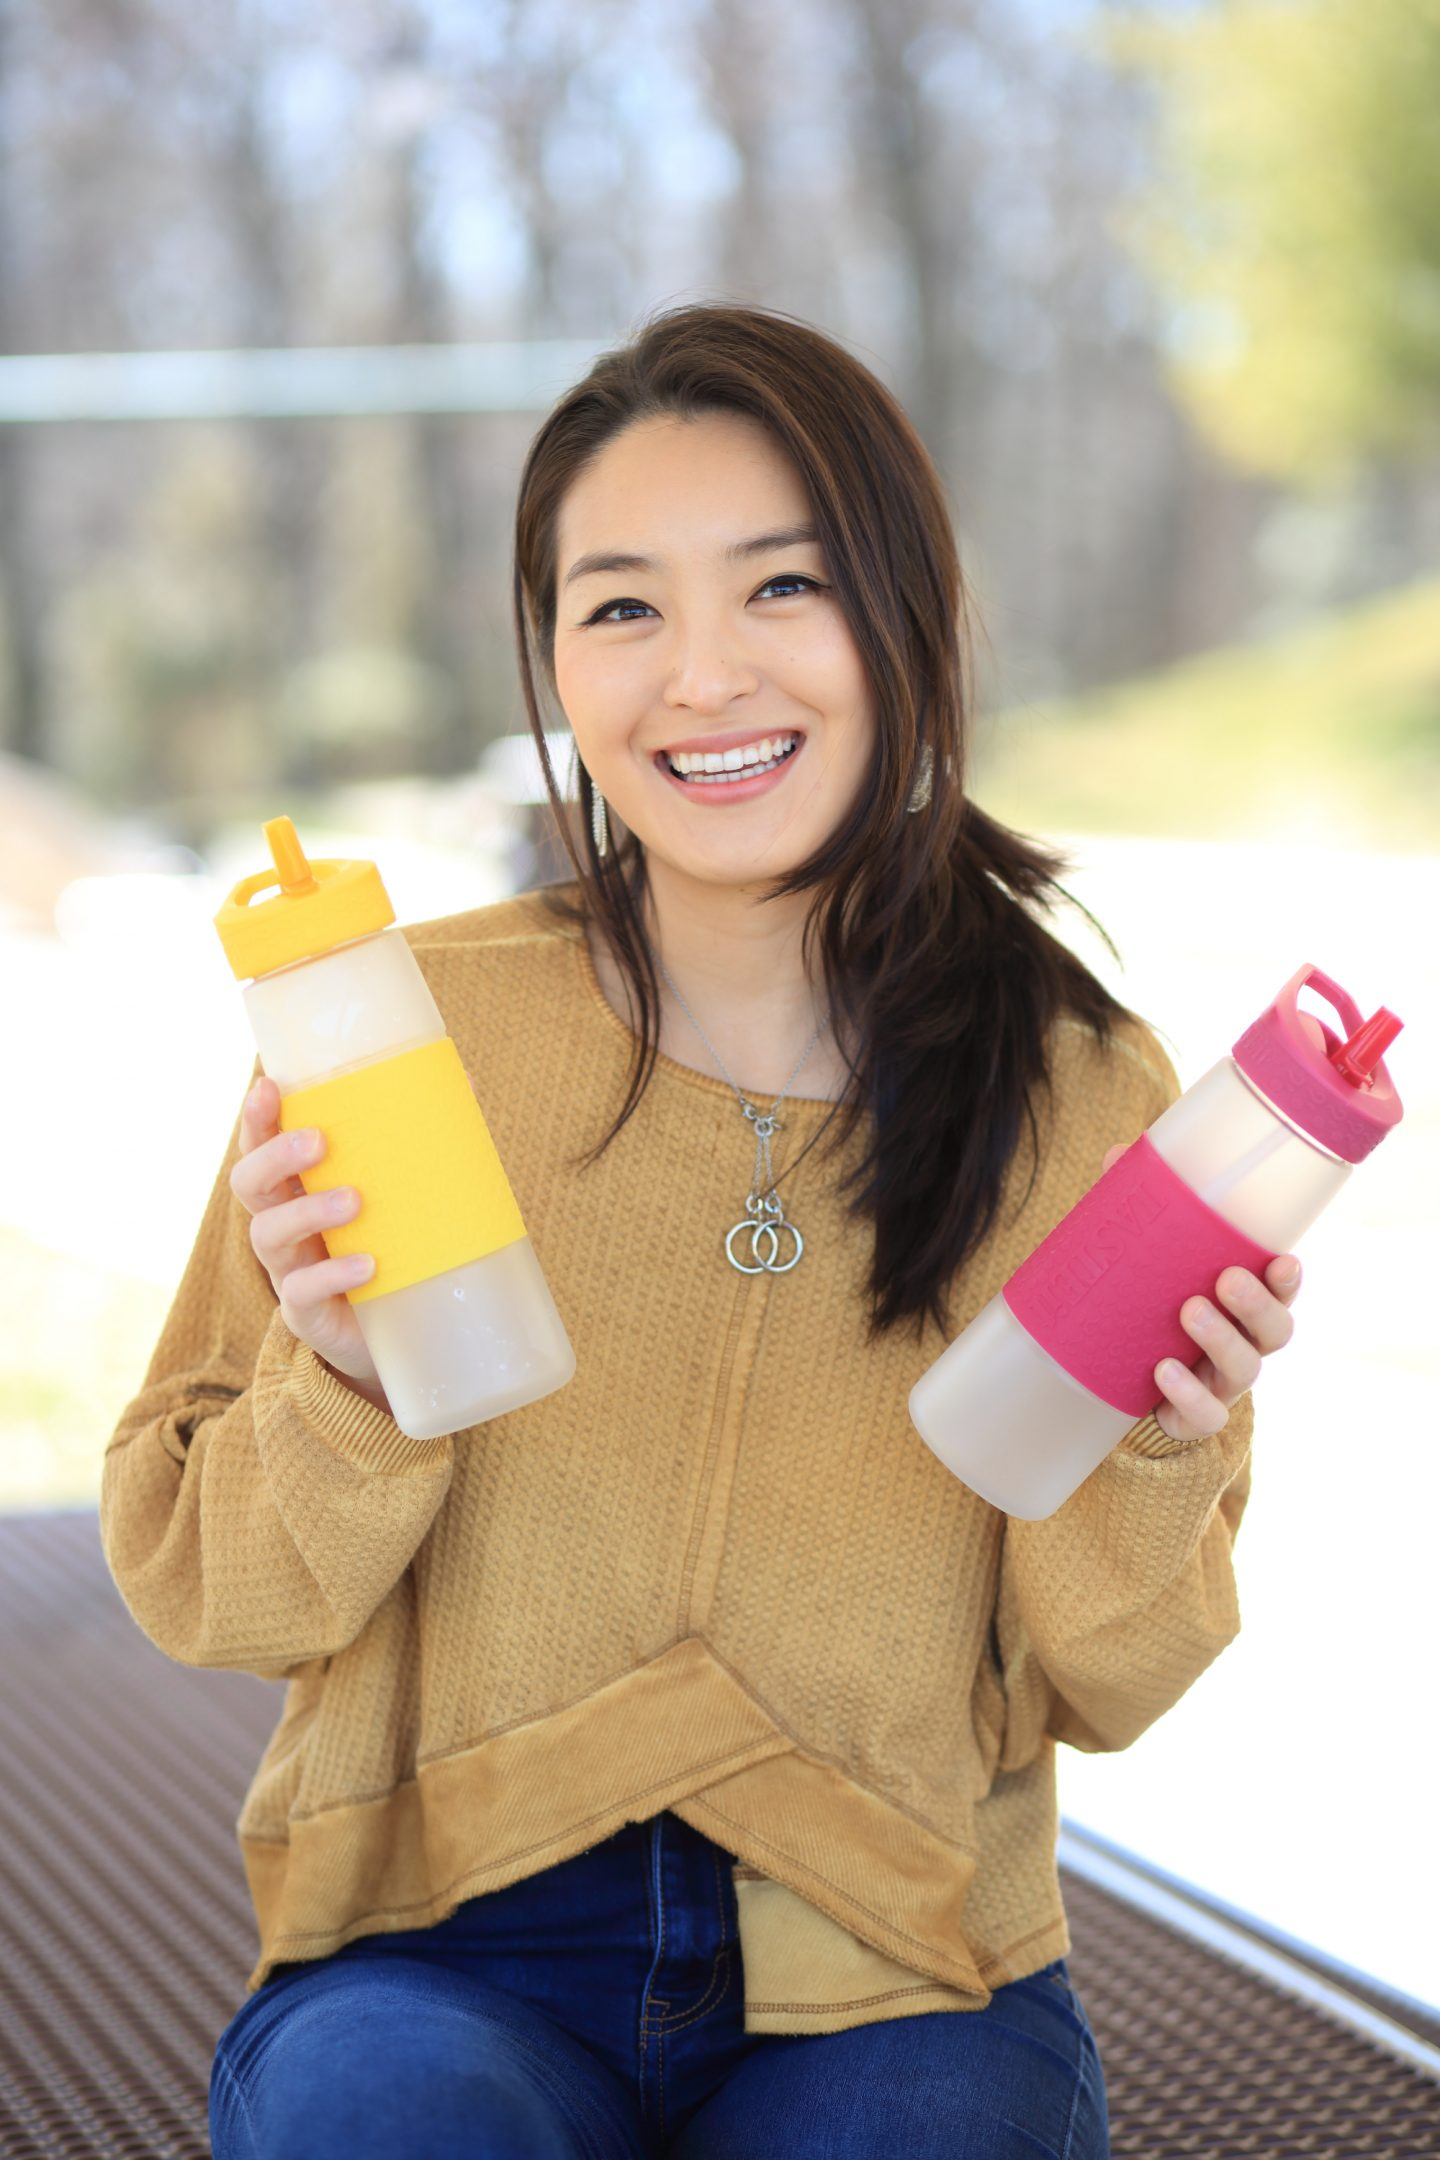 TASTEit Health water bottles